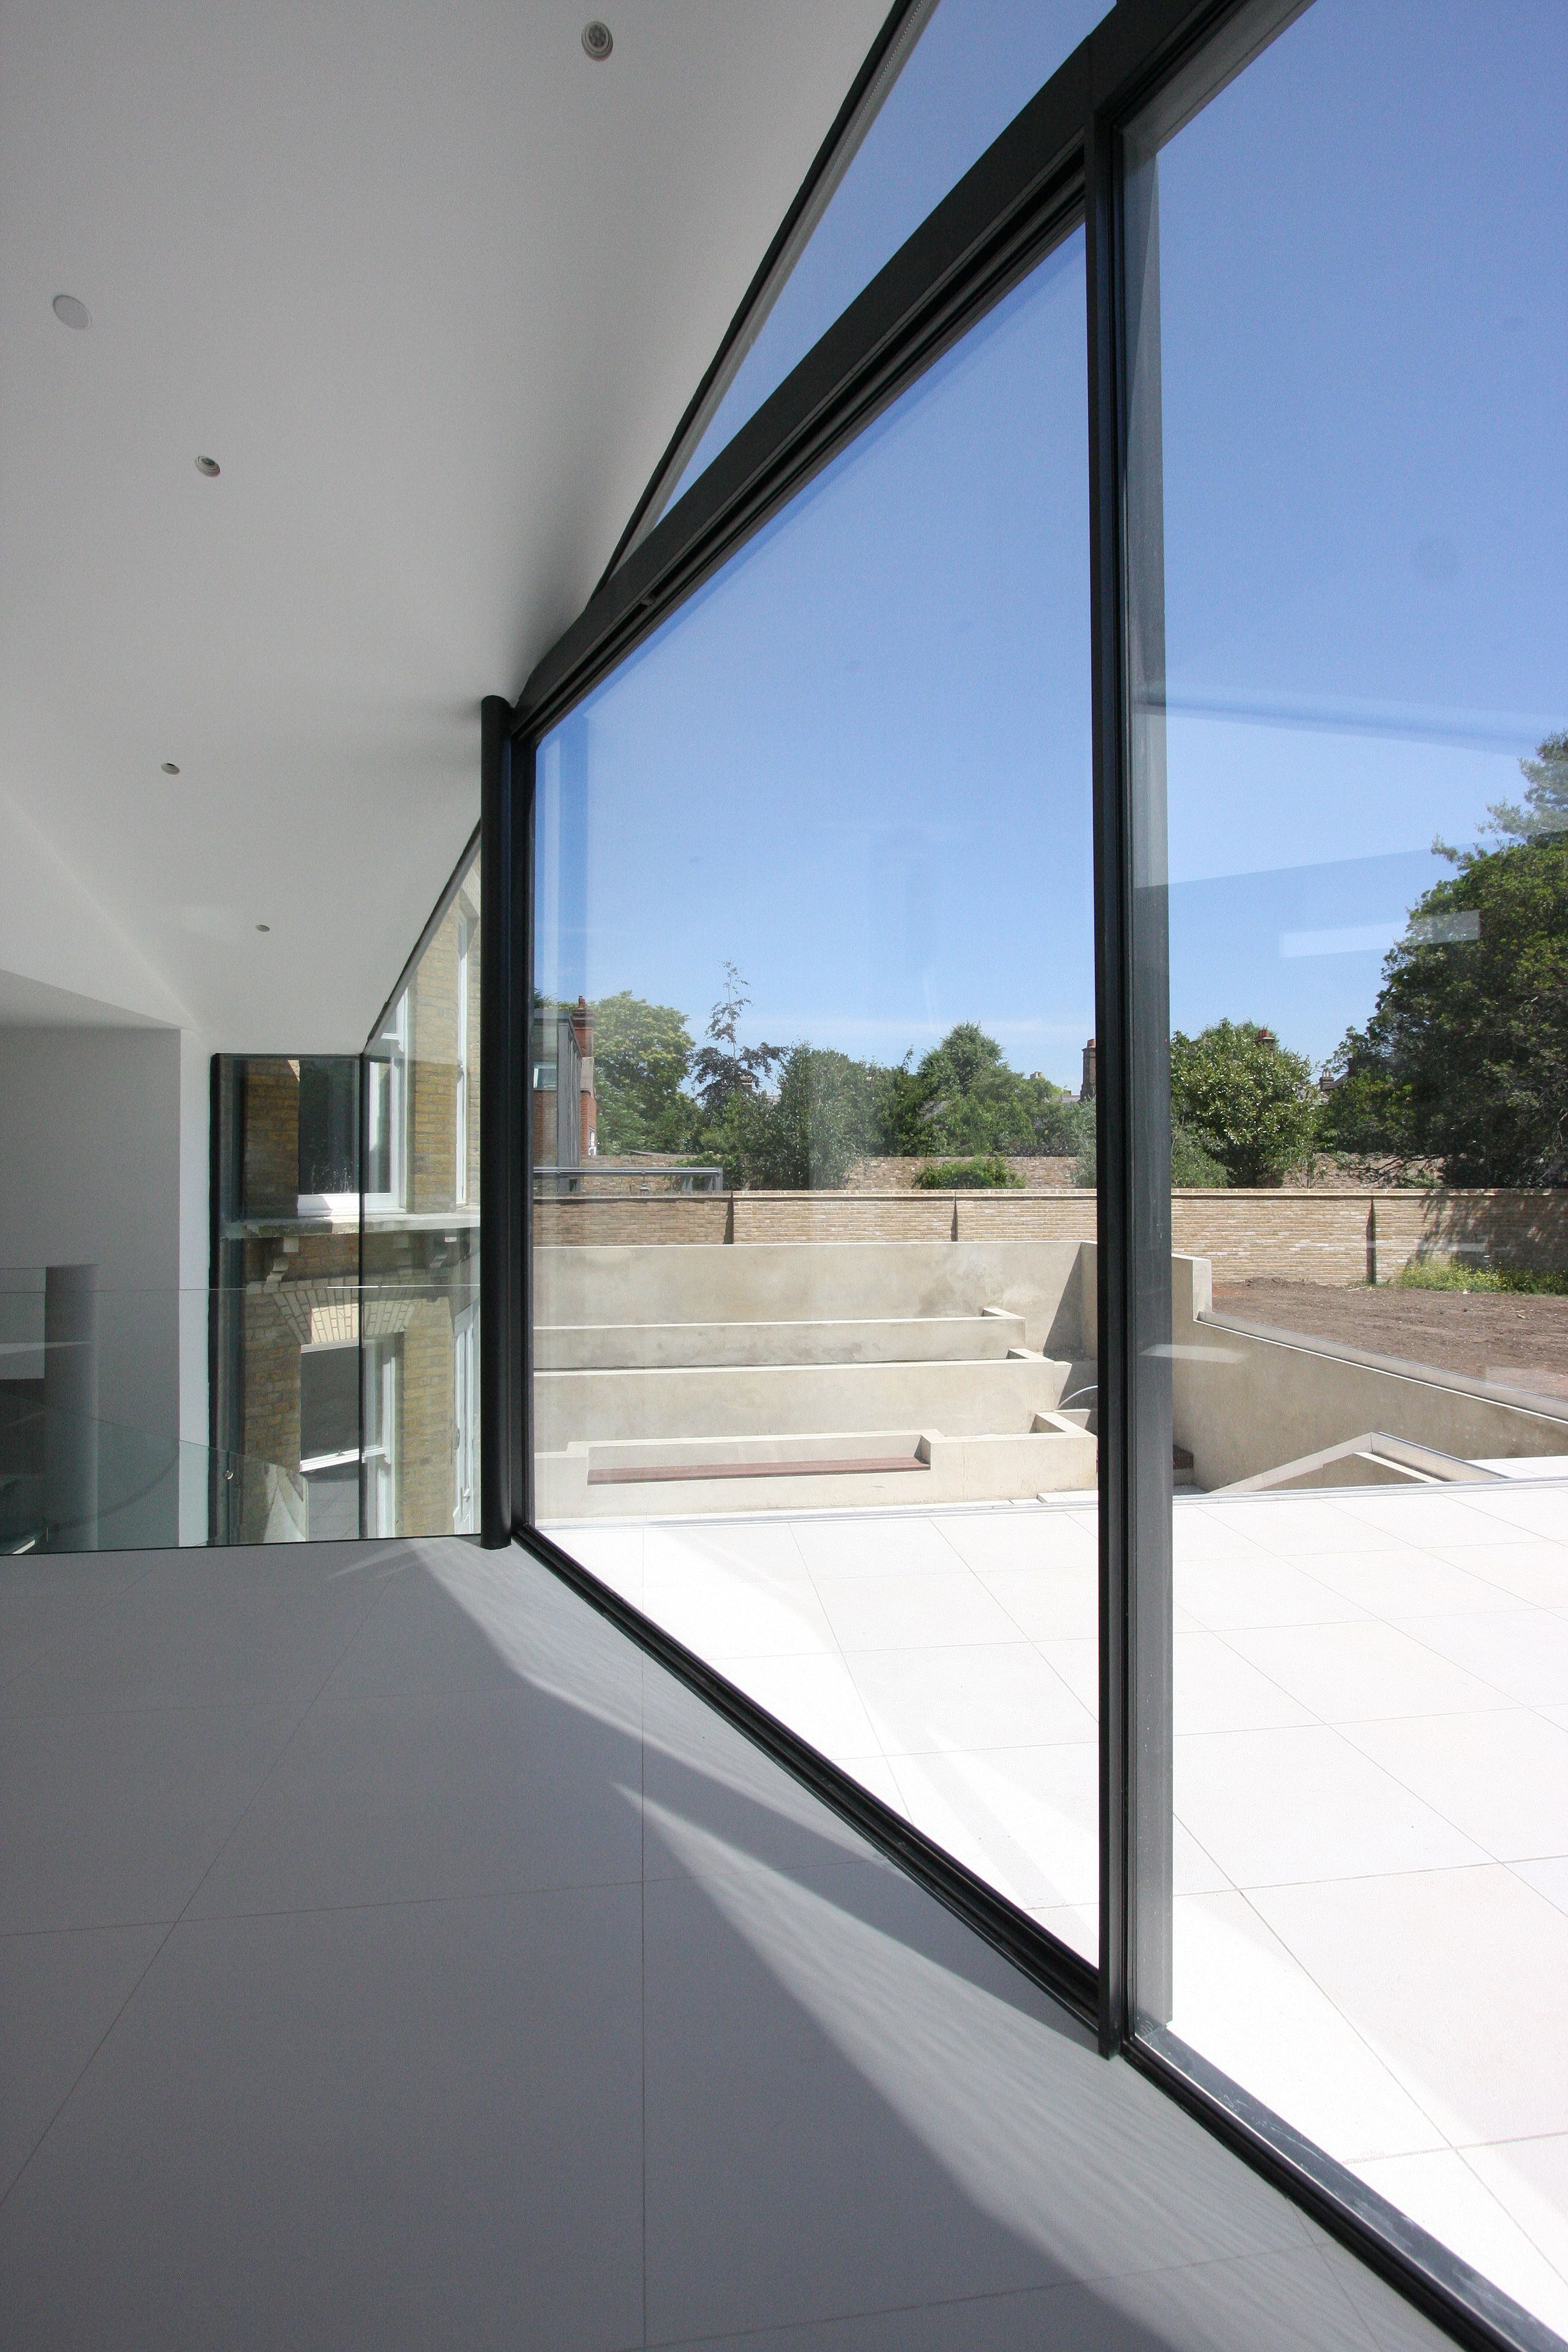 Large Glass Elevation, Sliding Minimal Windows Bringing The Outside In